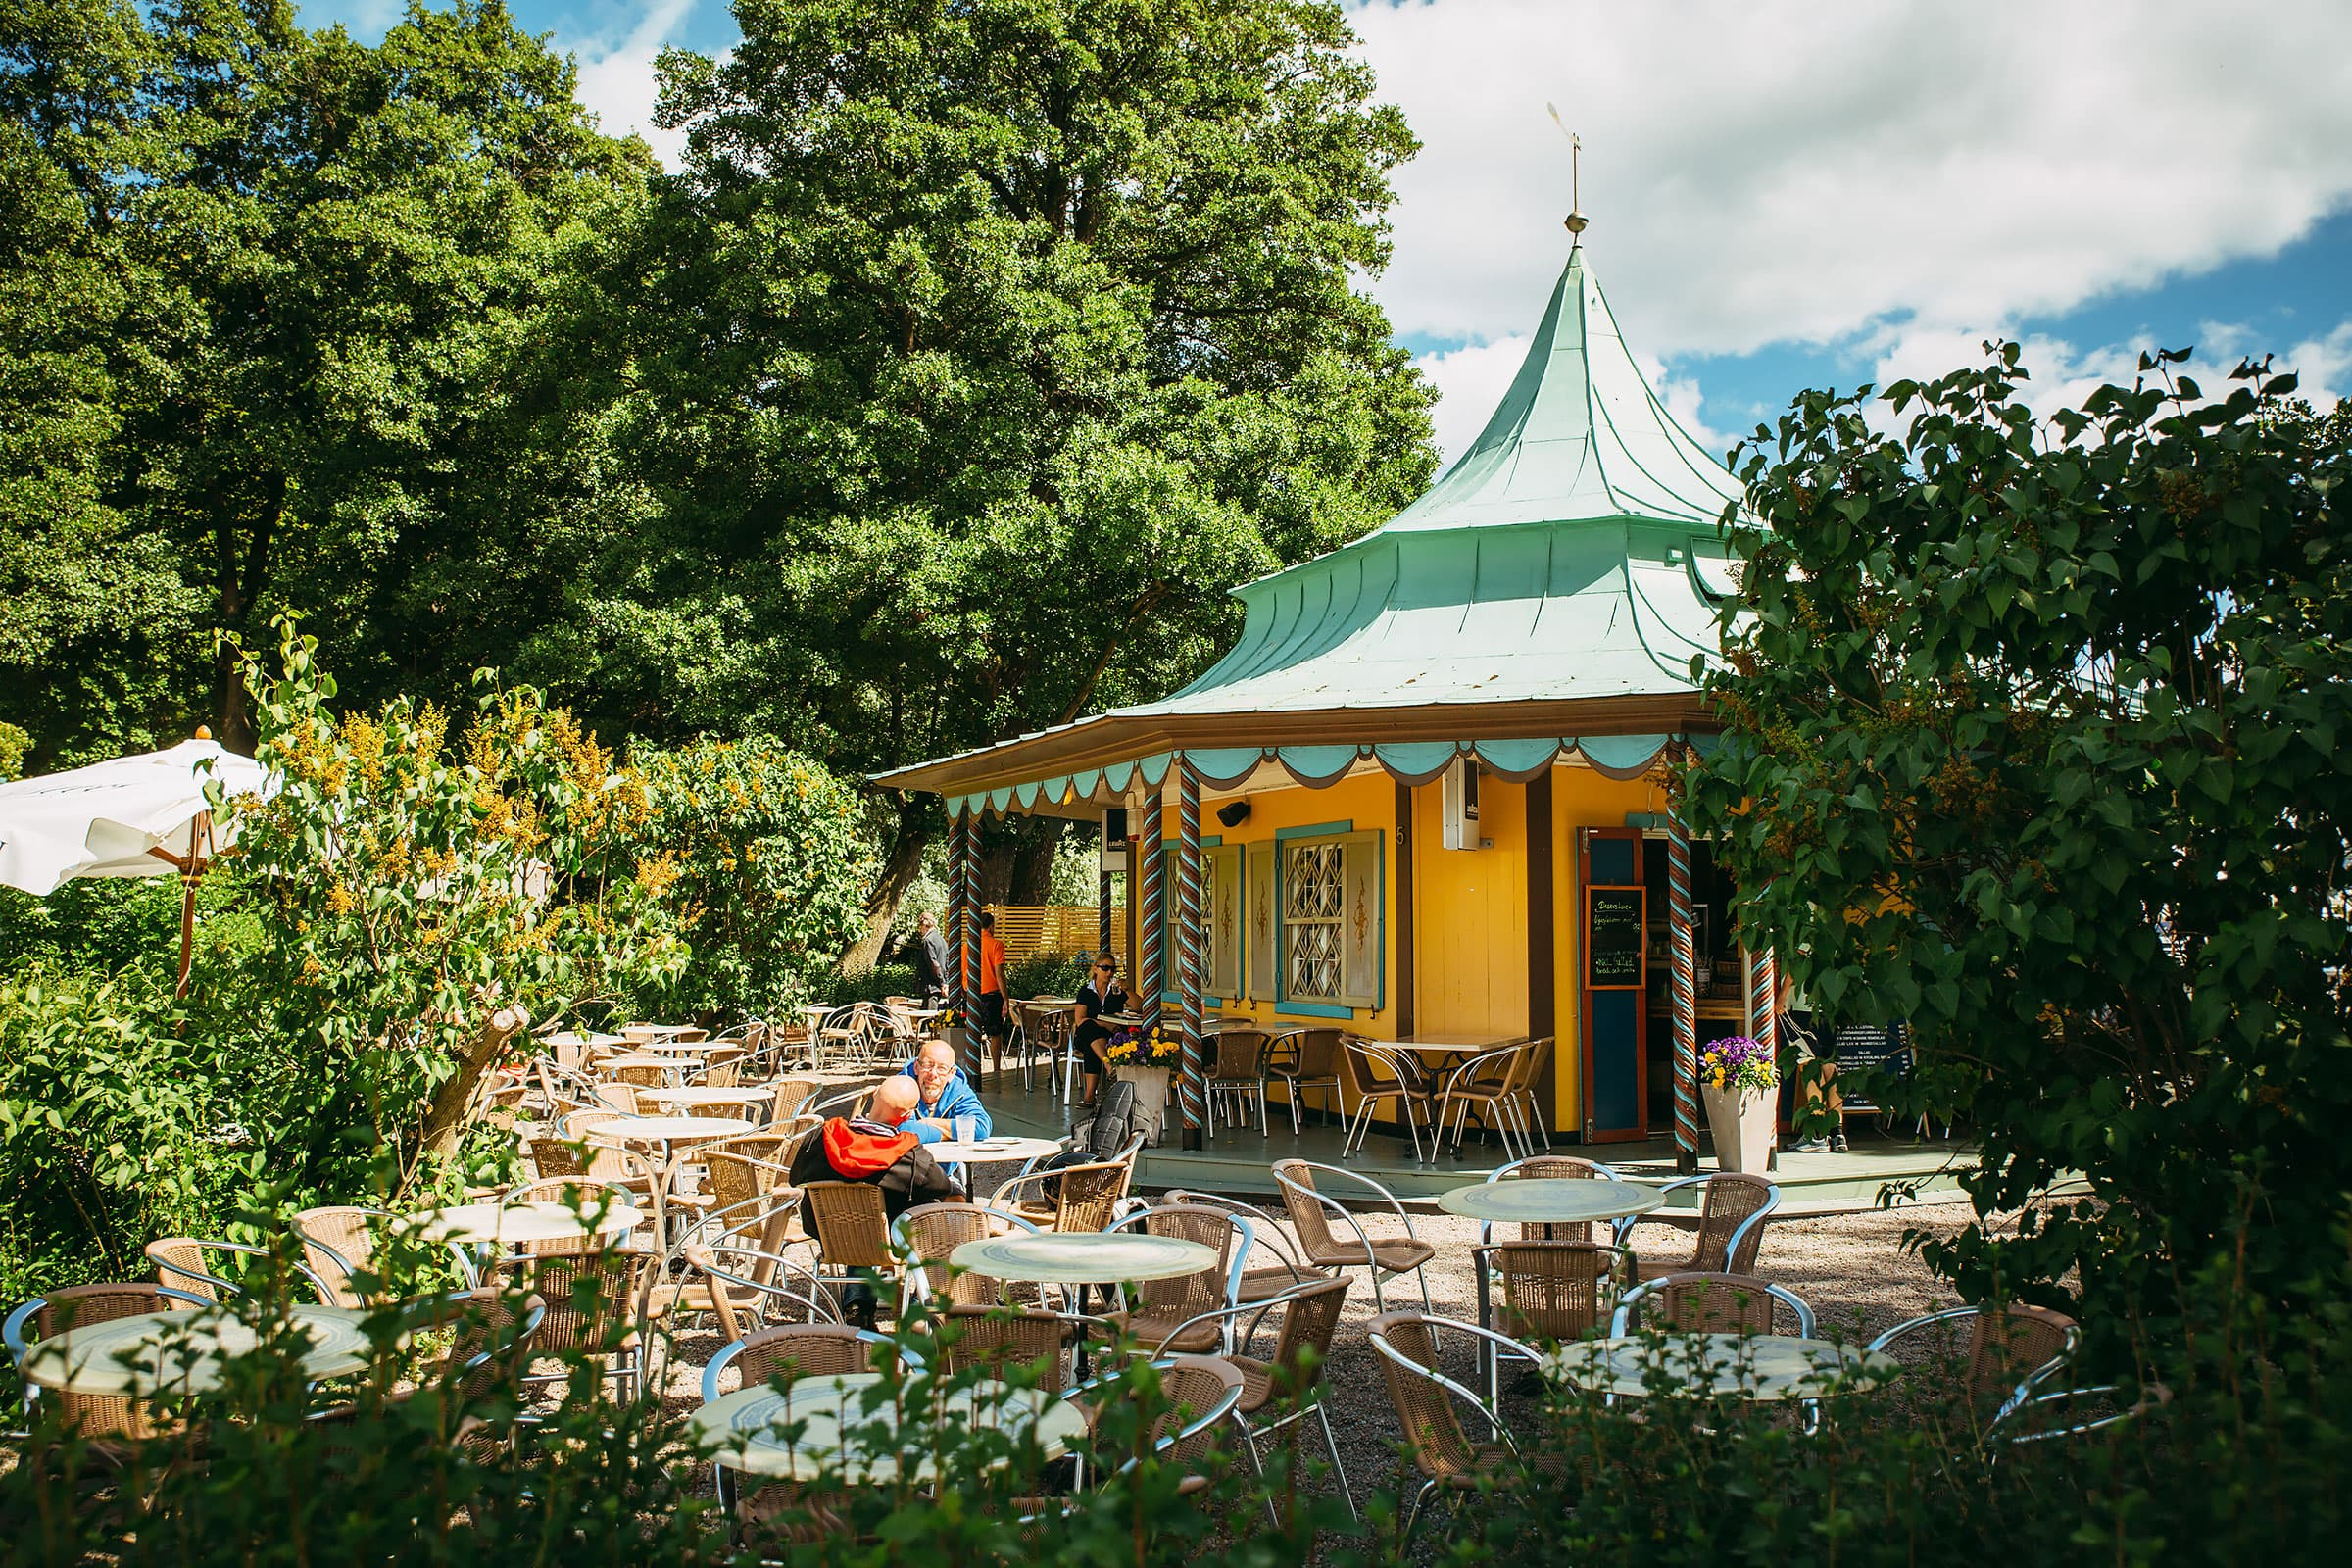 Charming cafés in green, leafy surroundings